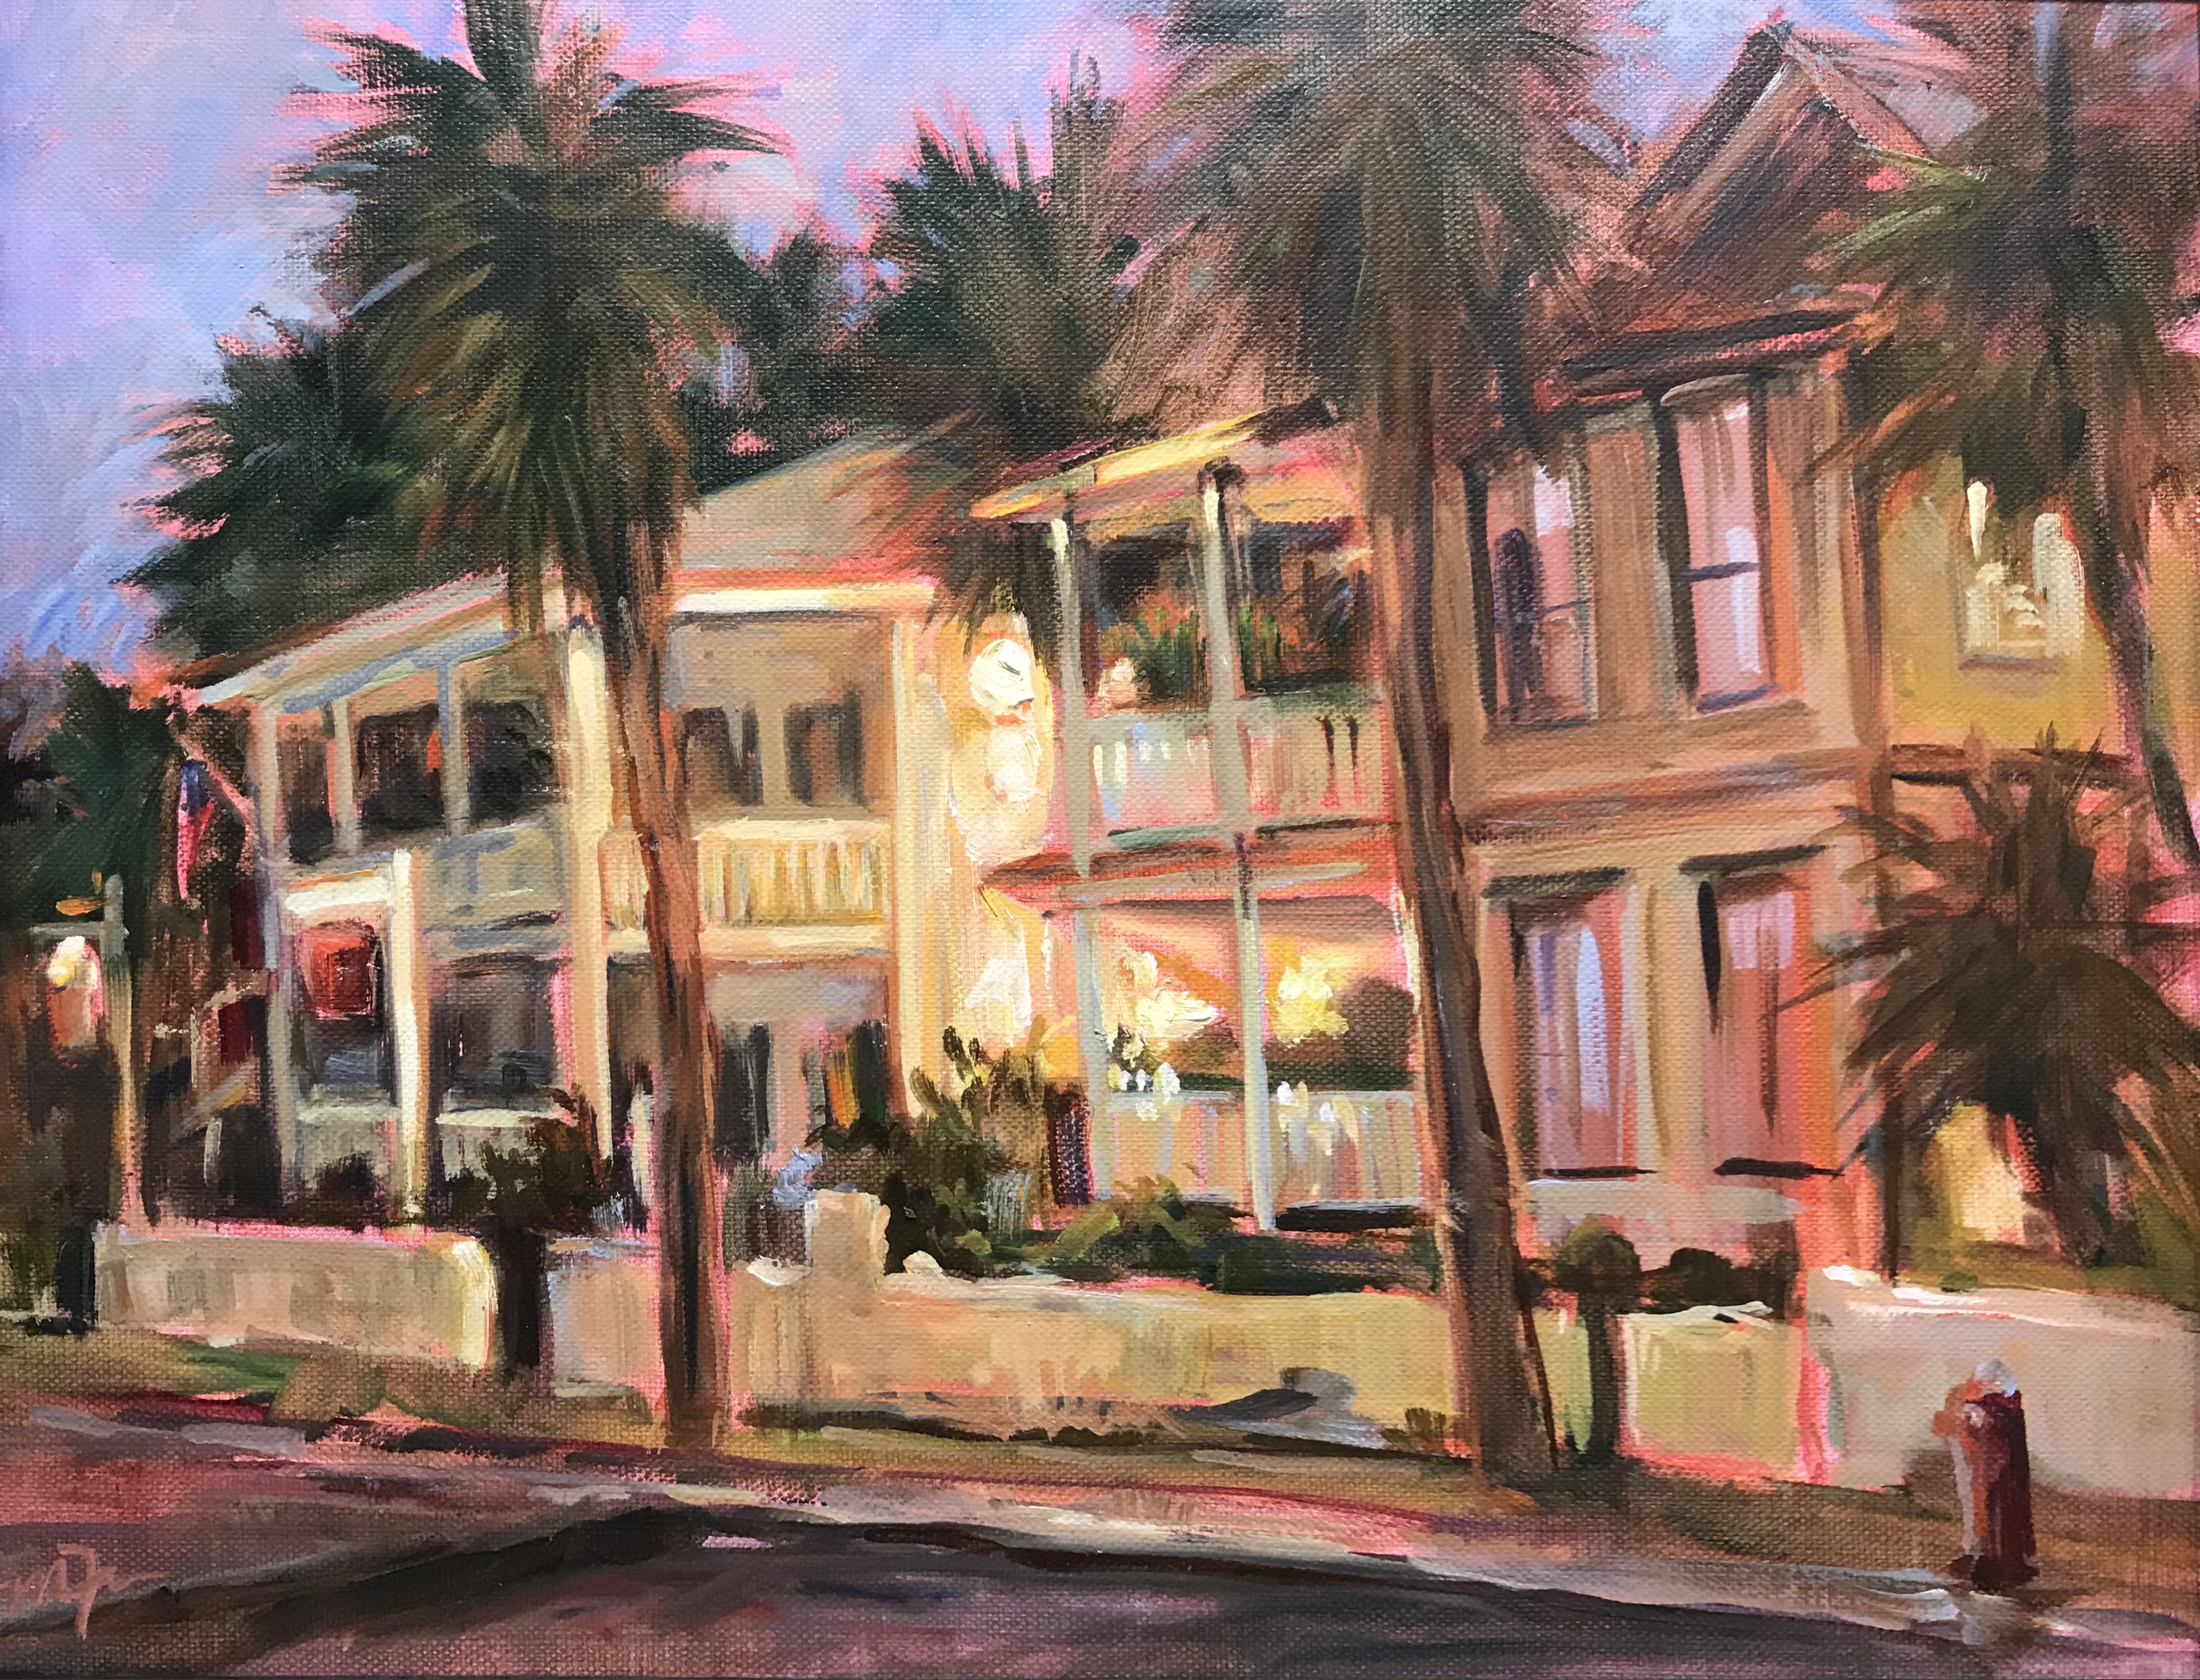 'Evening Lights on the Bayfront', oil by Martha Ferguson ($595) ⎼ 'My plan was to head to the bay front and say good bye to the Santa Maria. While feeling melancholy the sun started to set and the street lights came on. I was inspired by the beauty of the evening lights in this work.'